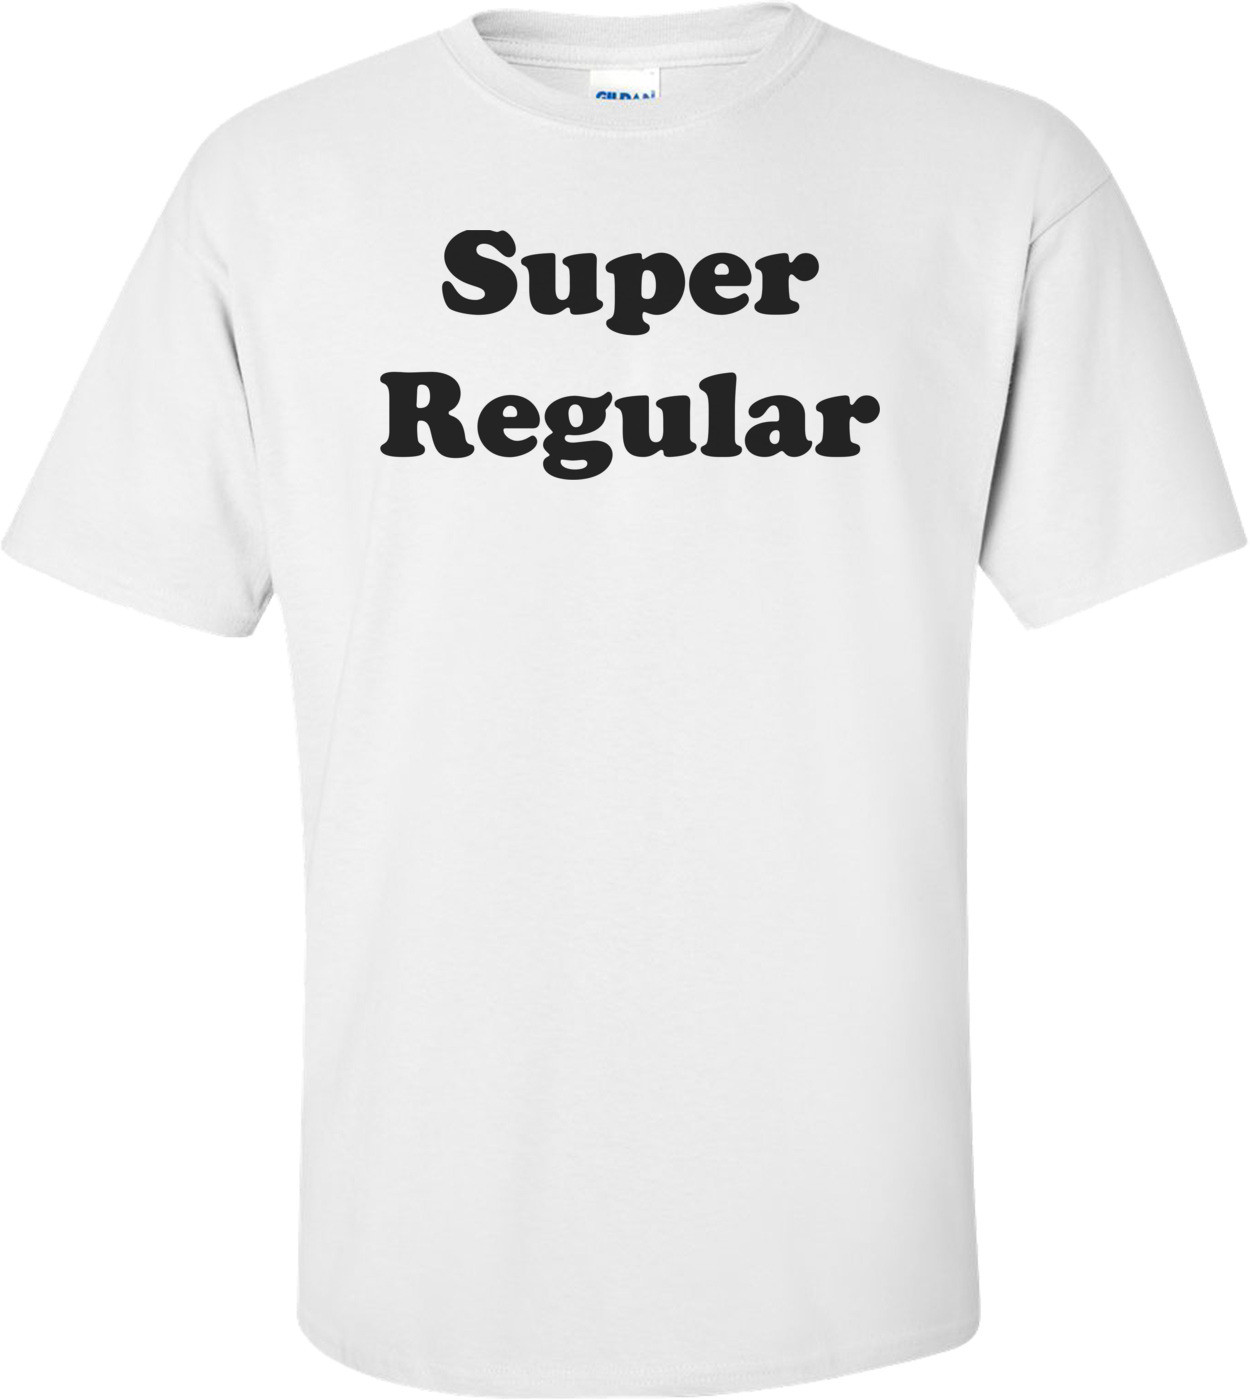 Super Regular Shirt